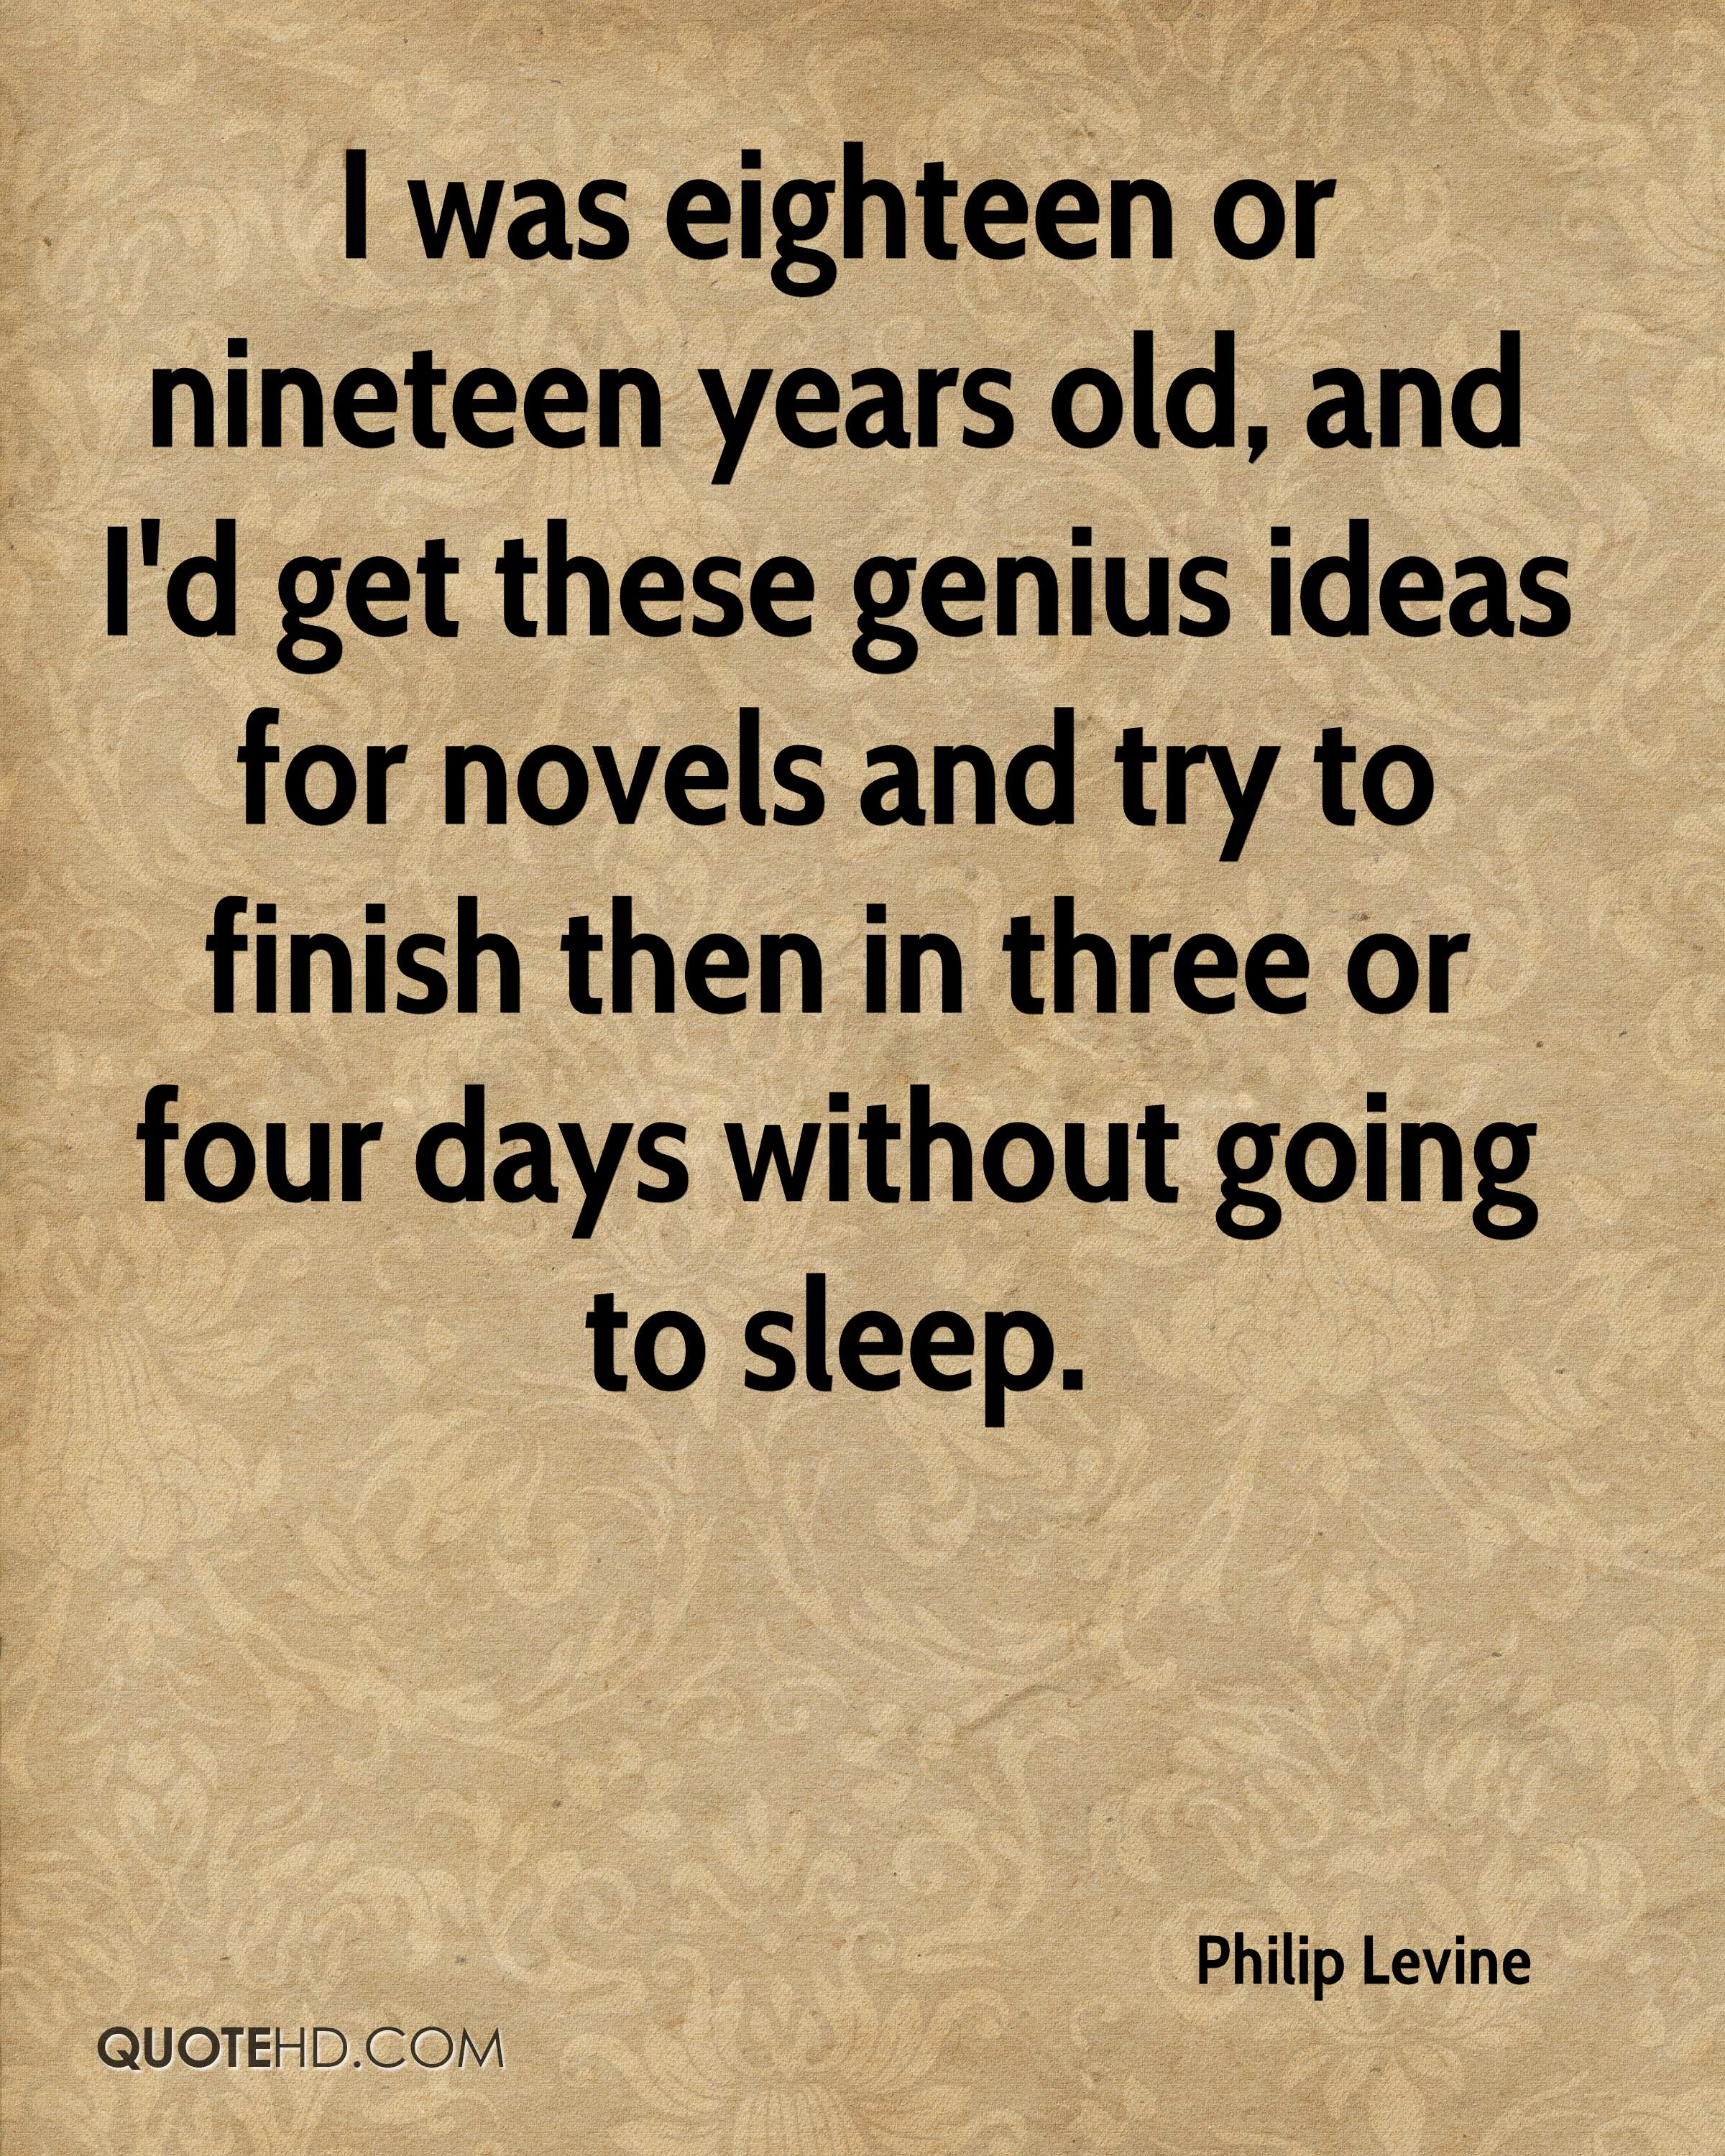 I was eighteen or nineteen years old, and I'd get these genius ideas for novels and try to finish then in three or four days without going to sleep.